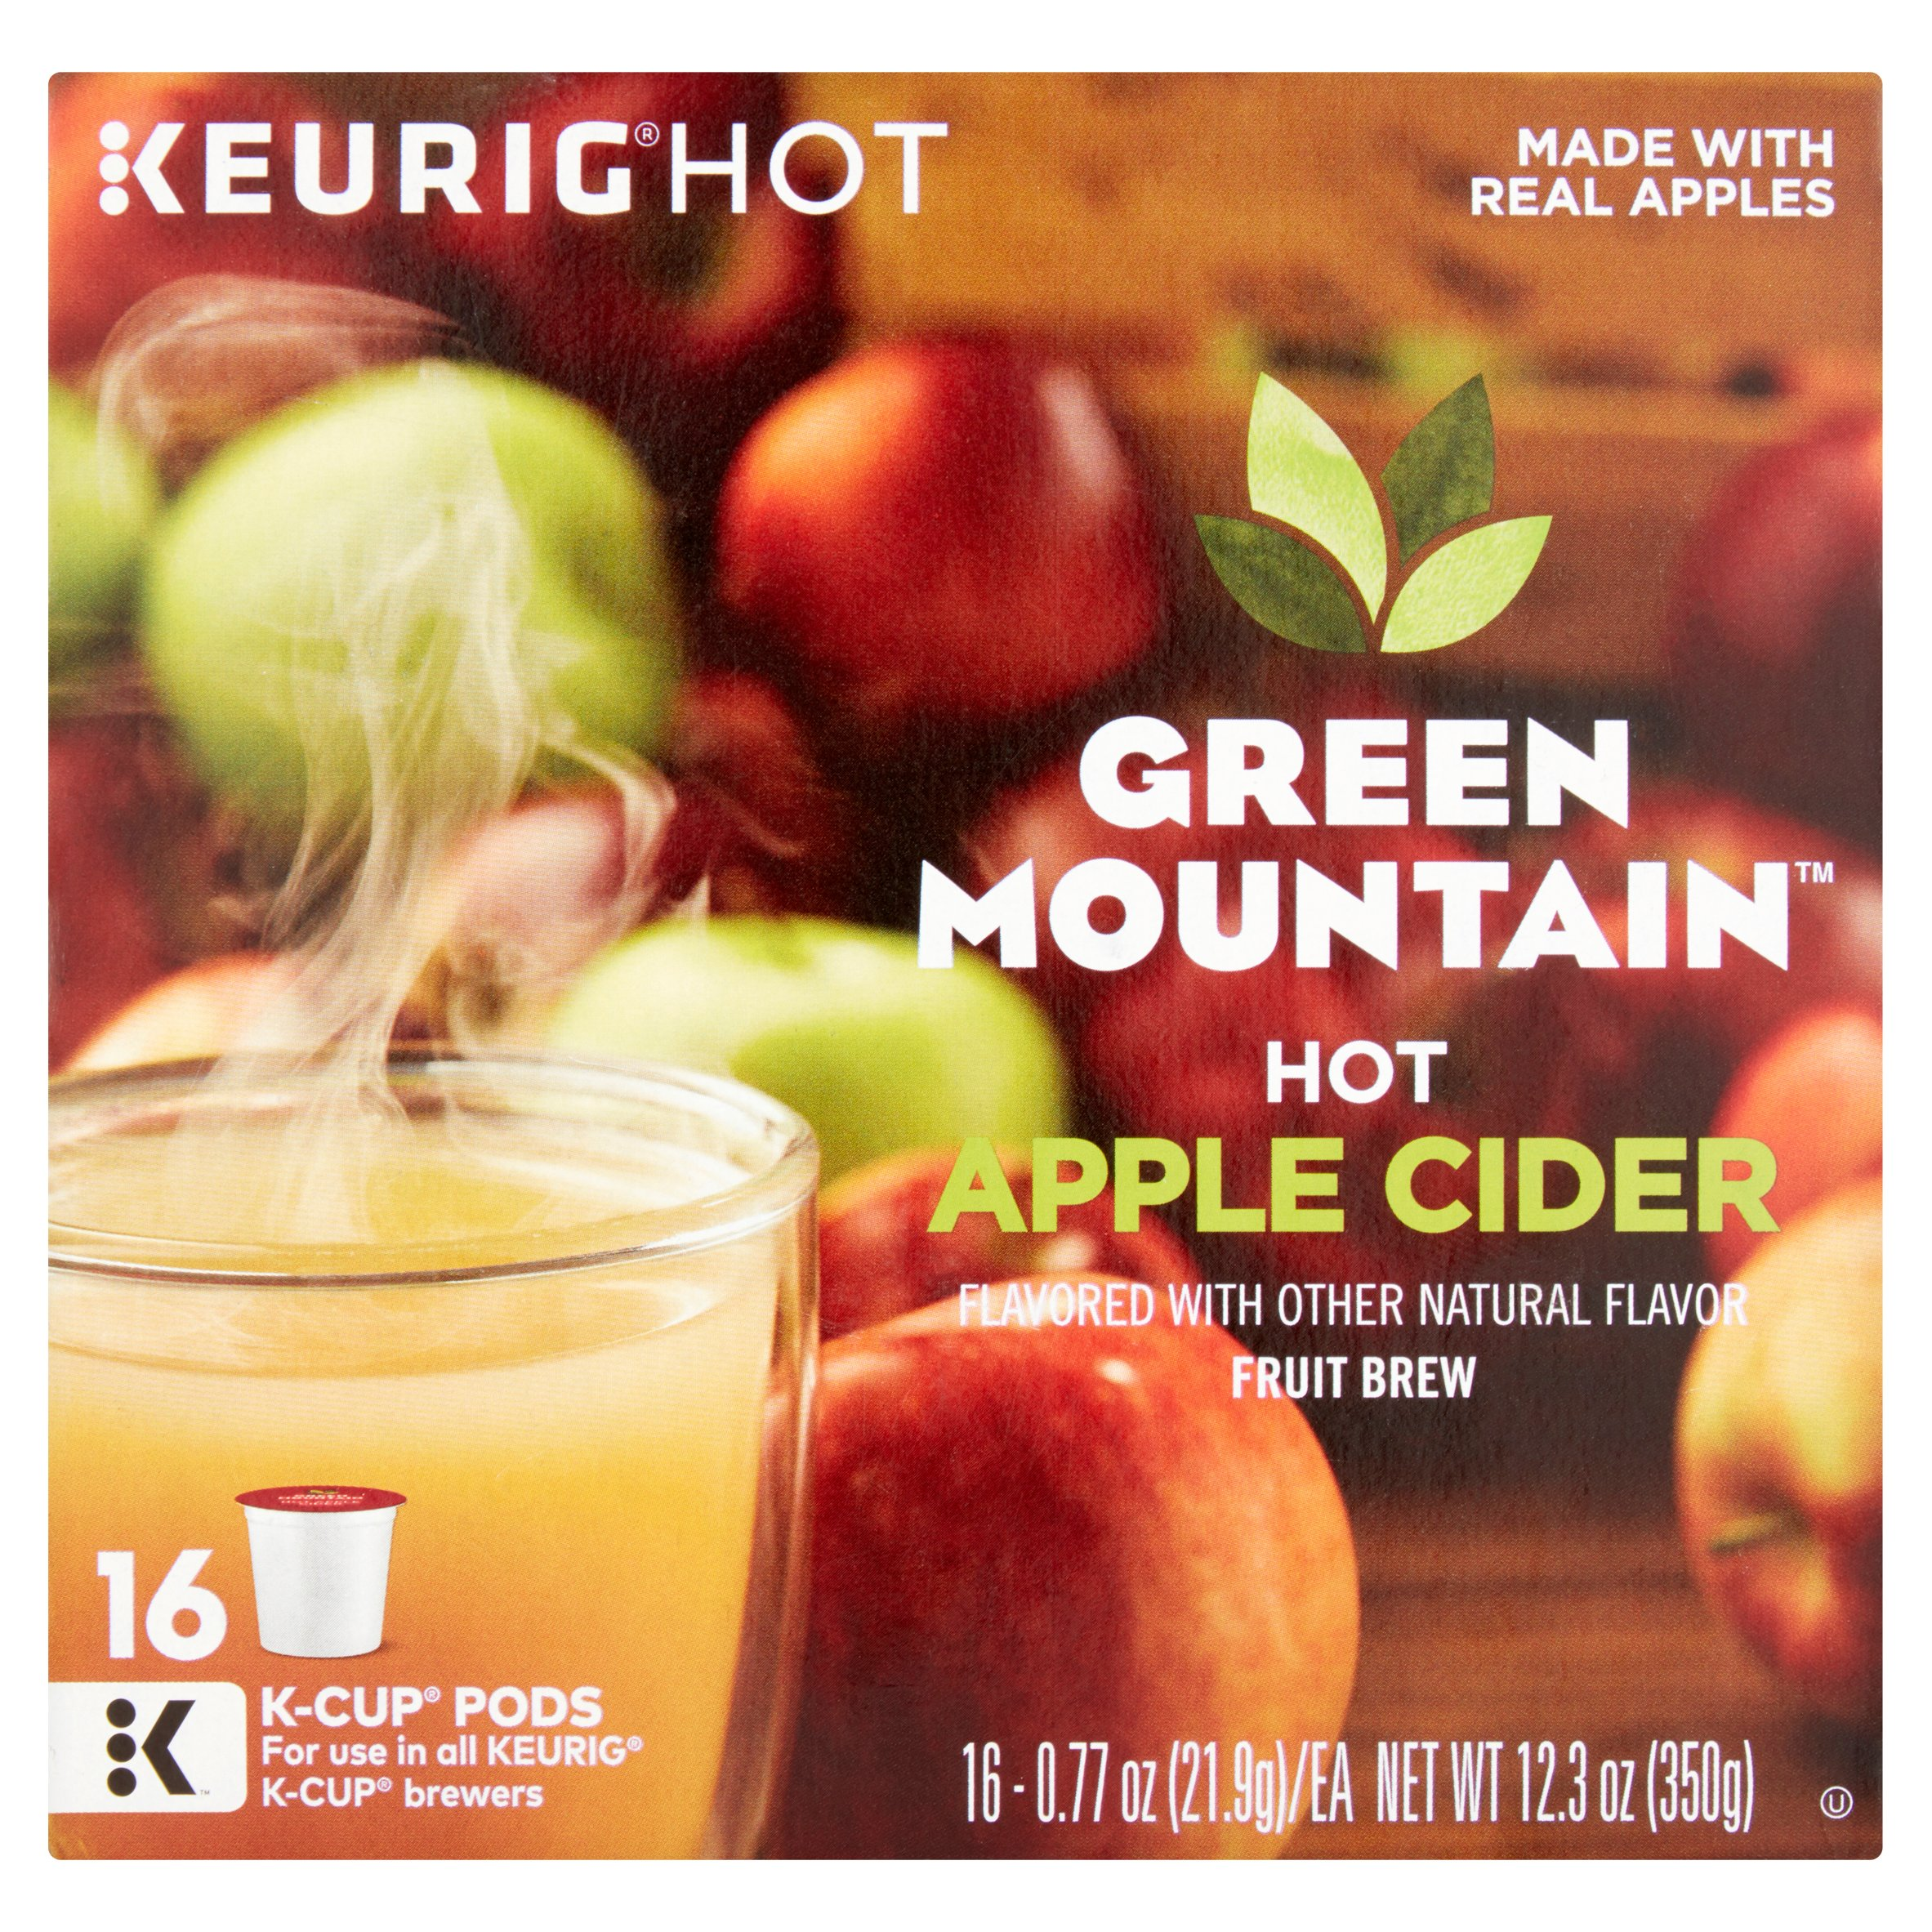 Keurig Hot Green Mountain Hot Apple Cider Fruit Brew K-Cup Pods, 0.77 oz, 16 count